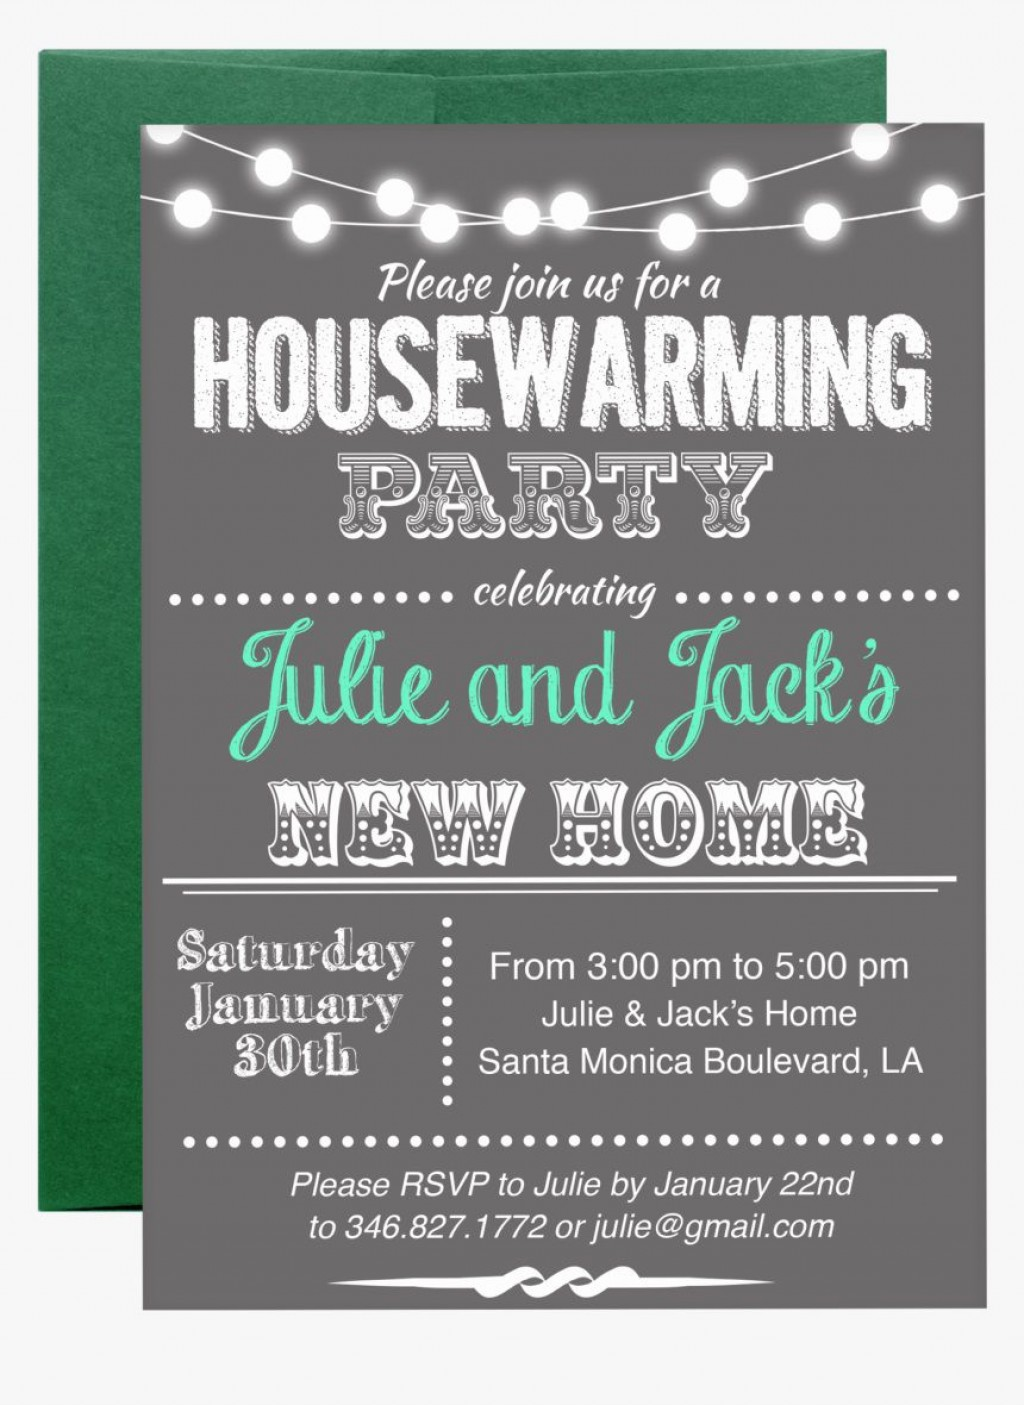 002 Exceptional Free Housewarming Invitation Template High Def  Templates Printable India Video DownloadLarge